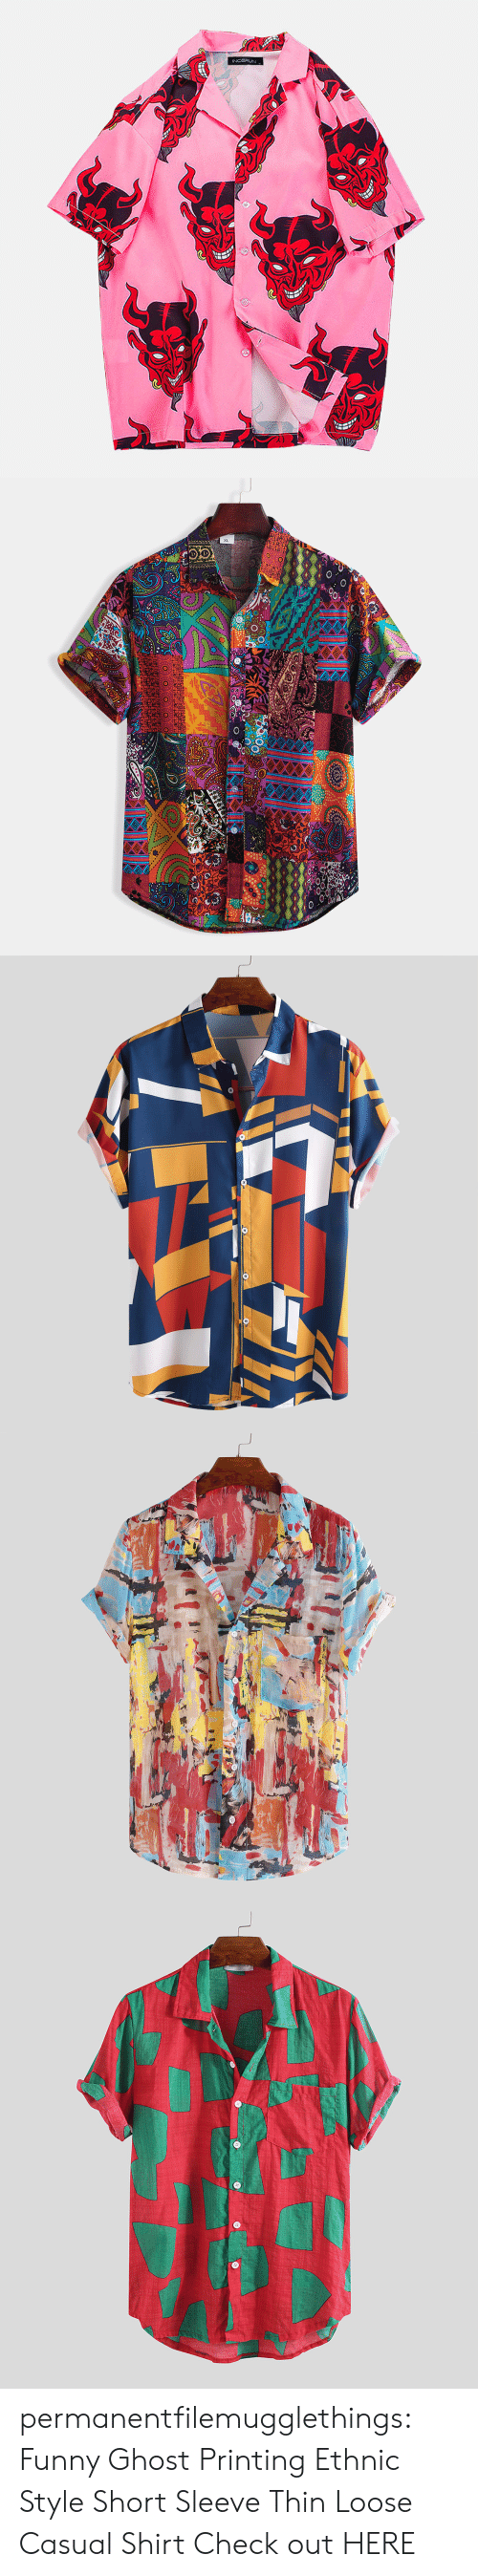 Funny, Tumblr, and Blog: NCERUN   XL permanentfilemugglethings: Funny Ghost Printing Ethnic Style Short Sleeve Thin Loose Casual Shirt Check out HERE